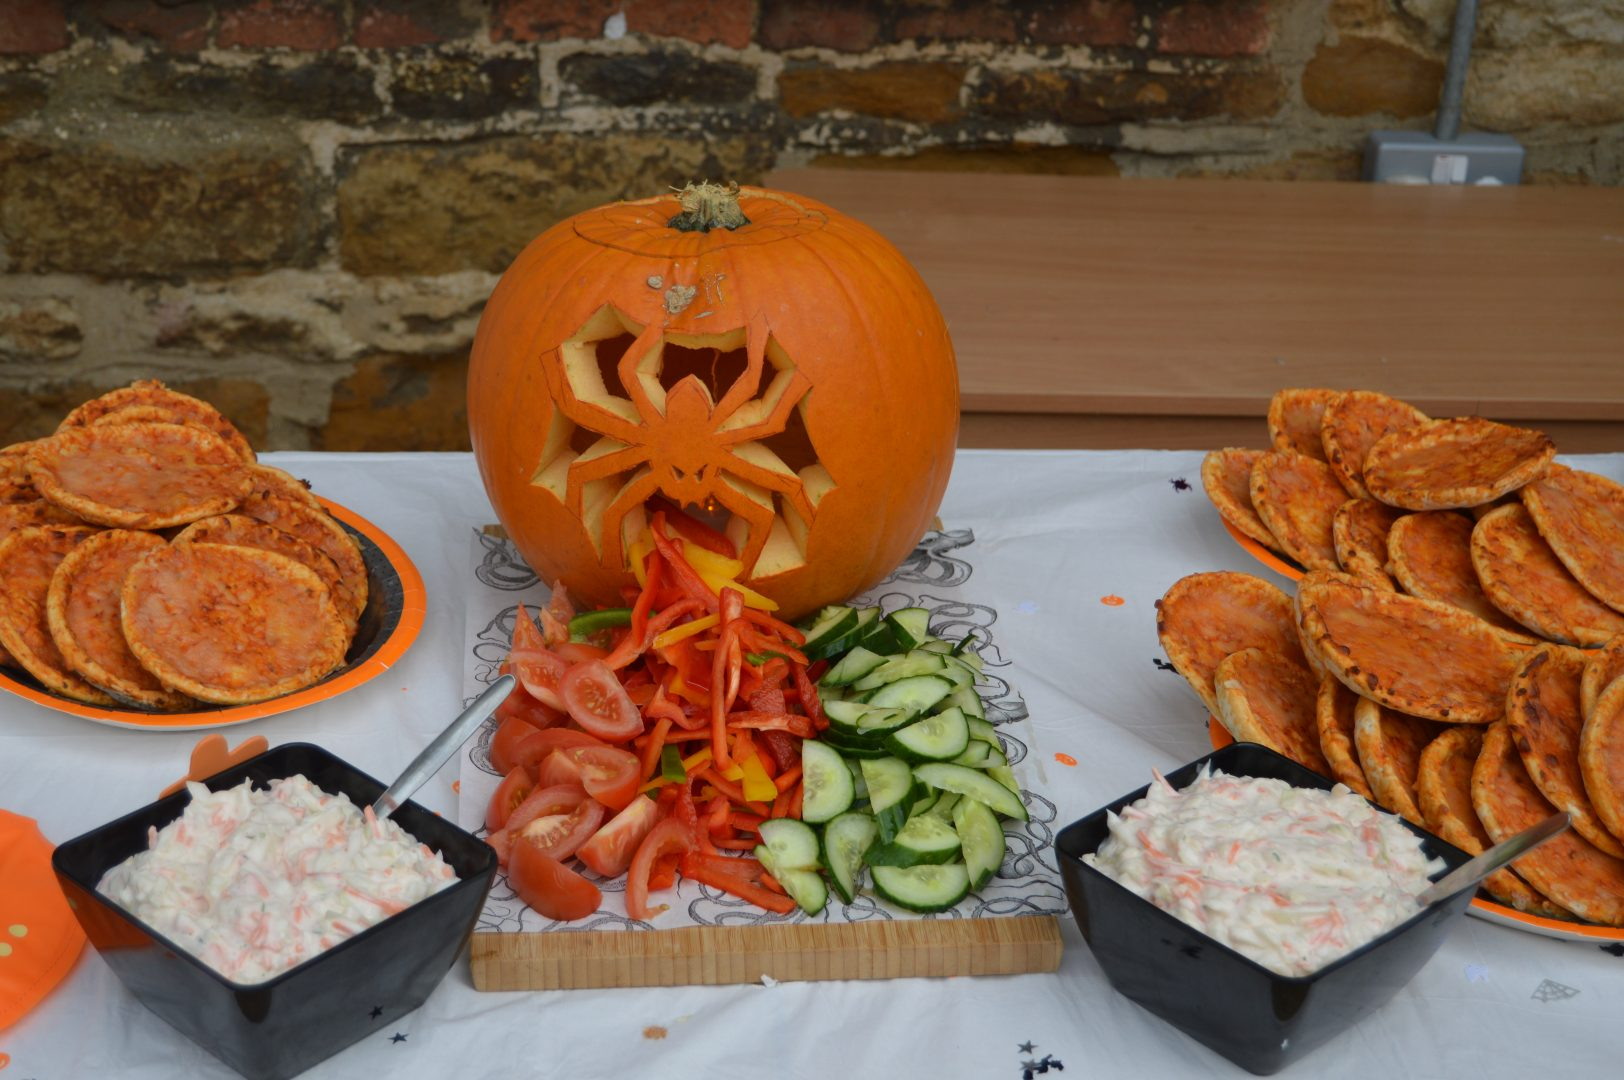 Display of Pumpkins and Salad